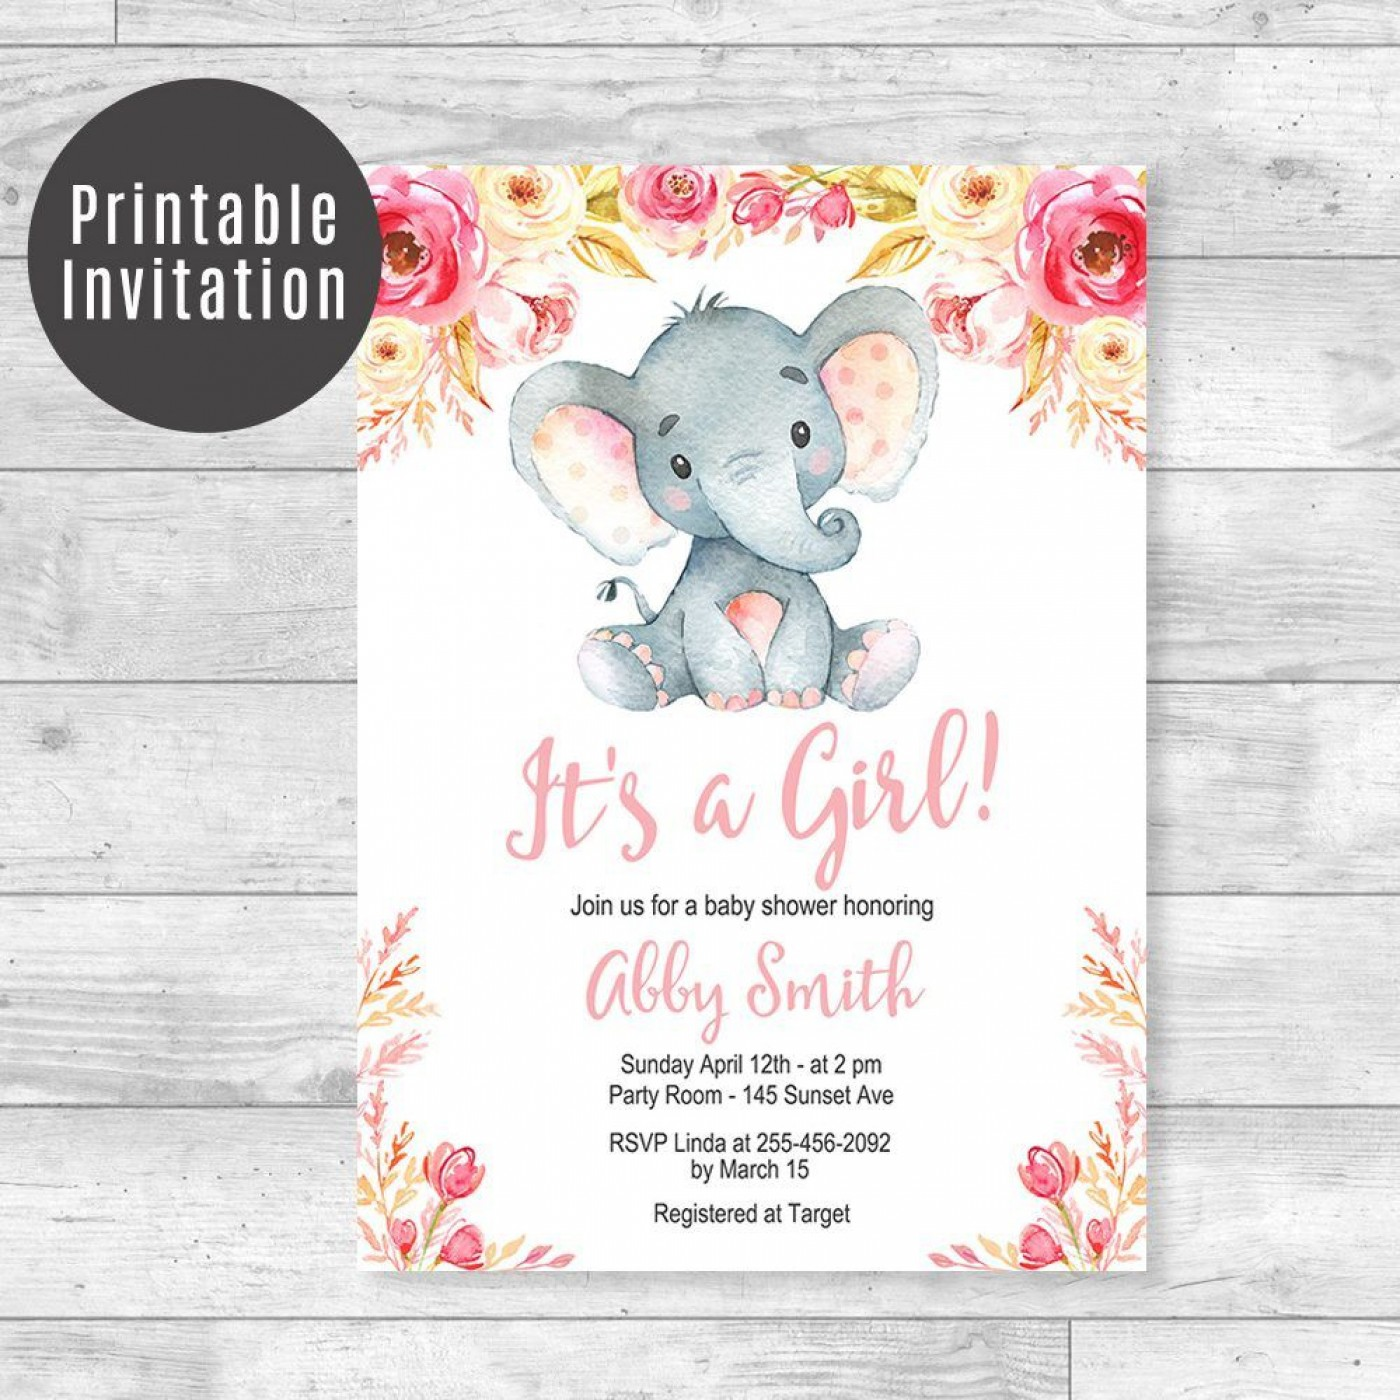 005 Archaicawful Baby Shower Invitation Girl Printable High Resolution 1400